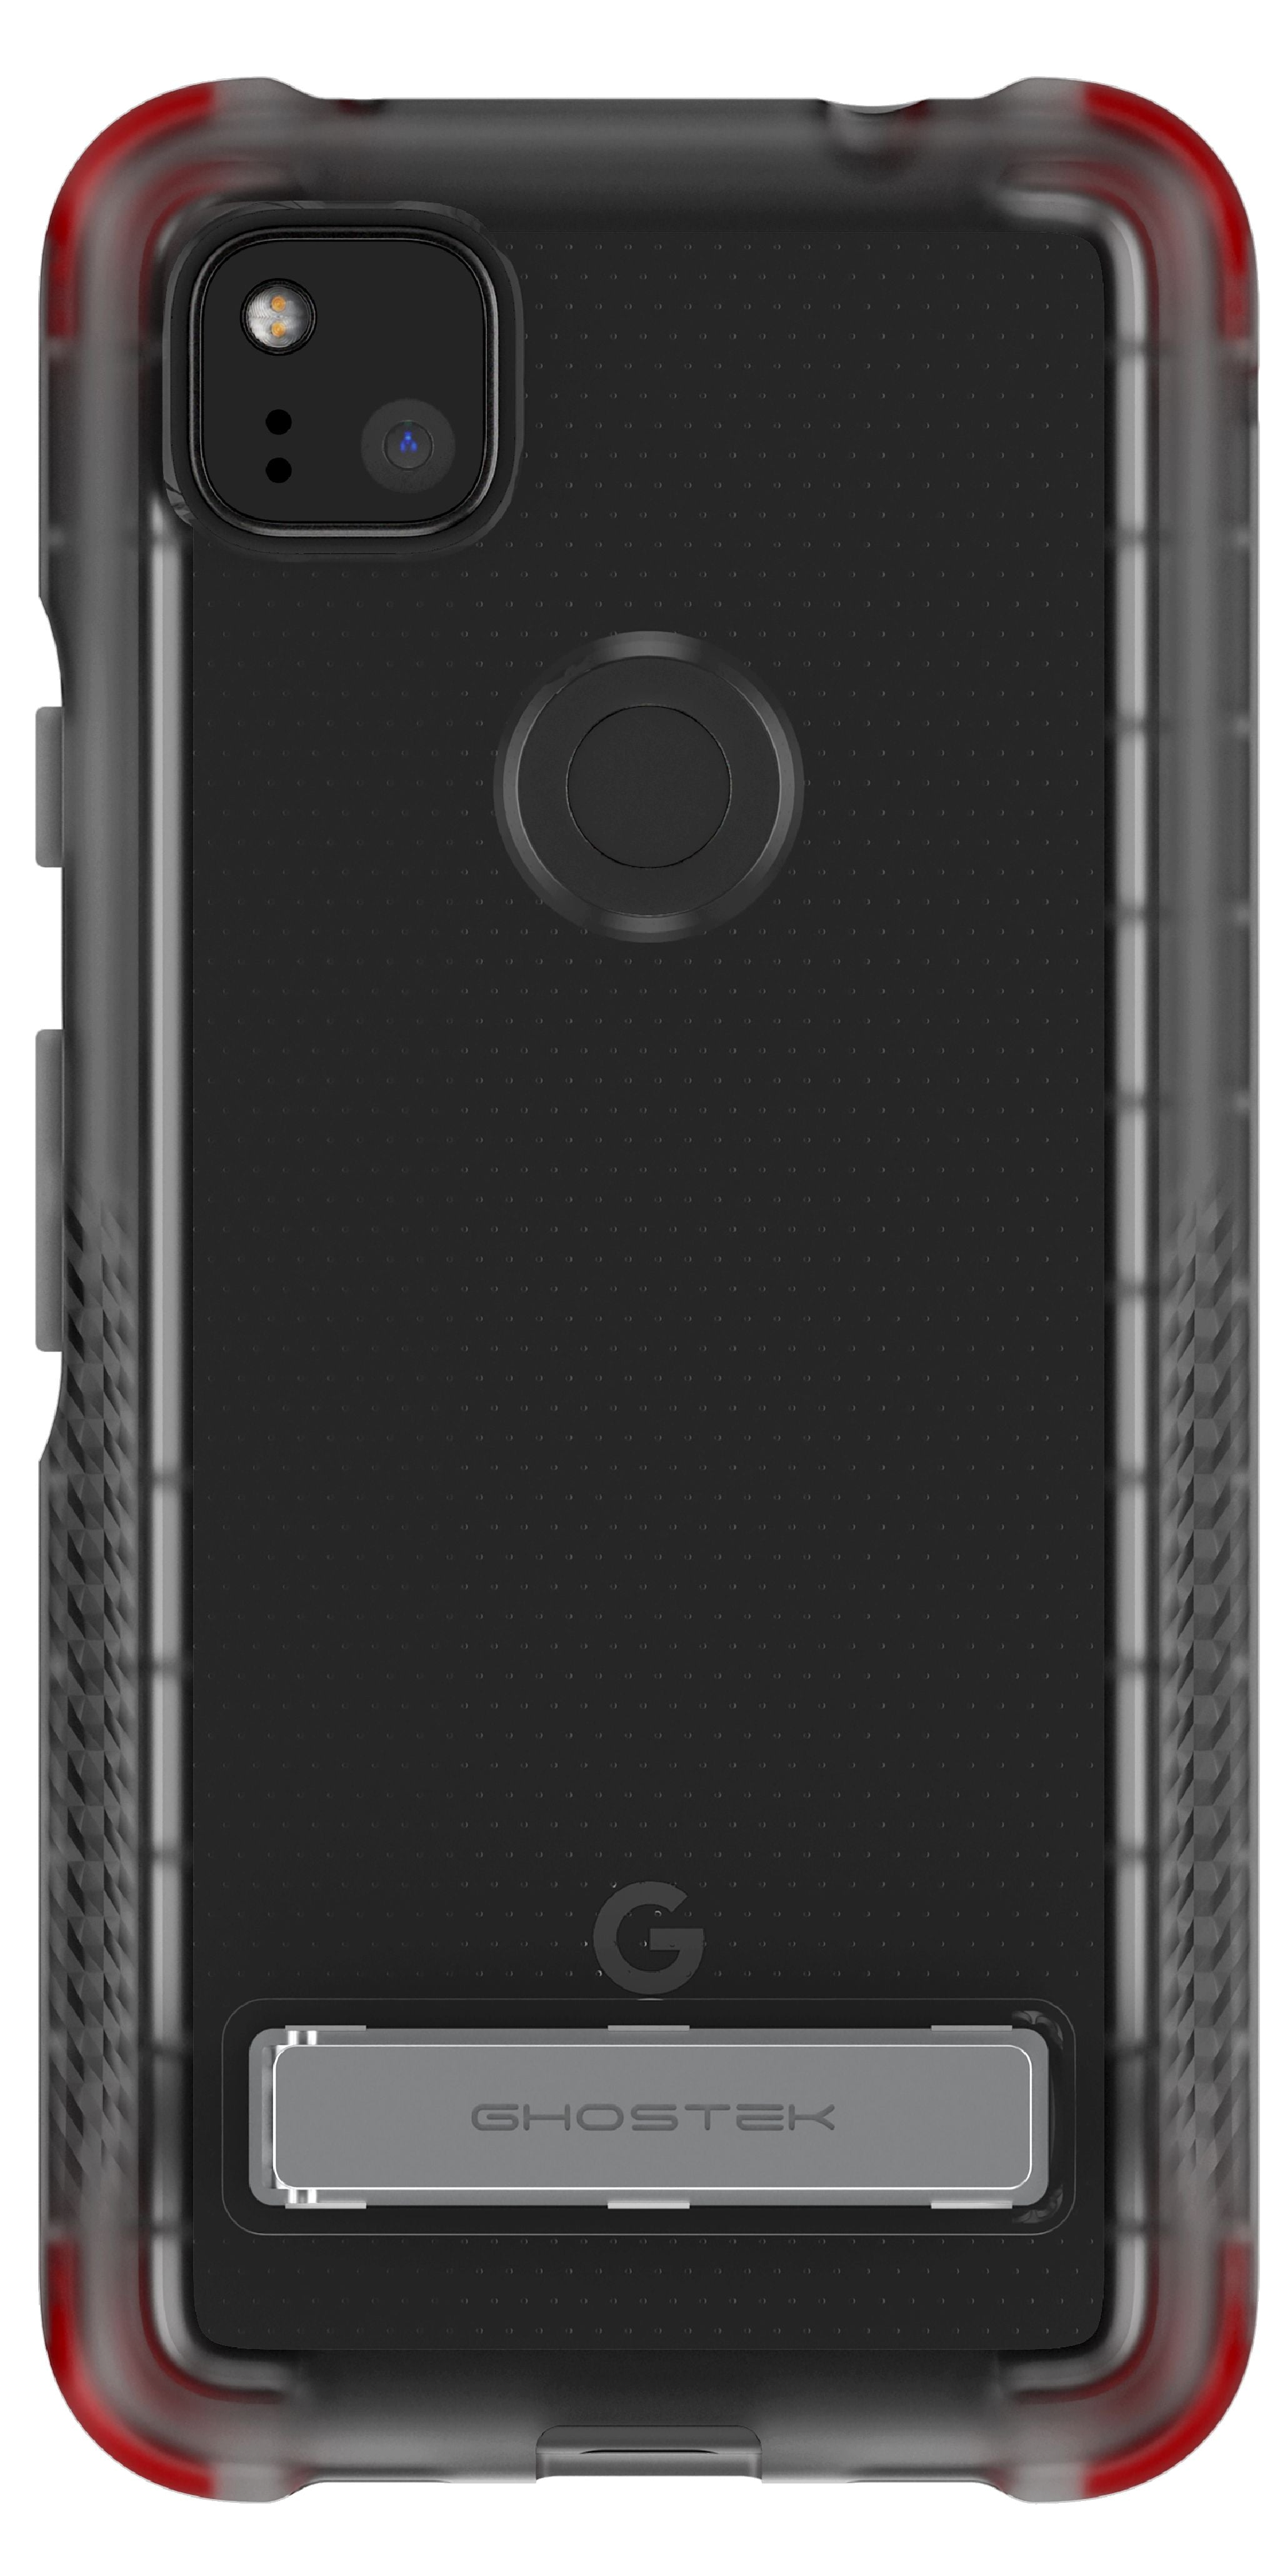 Google Pixel 4a Case | COVERT 4 Case | UVIYO CASES , Google Pixel 4a Cases , GHOSTEK - UVIYO